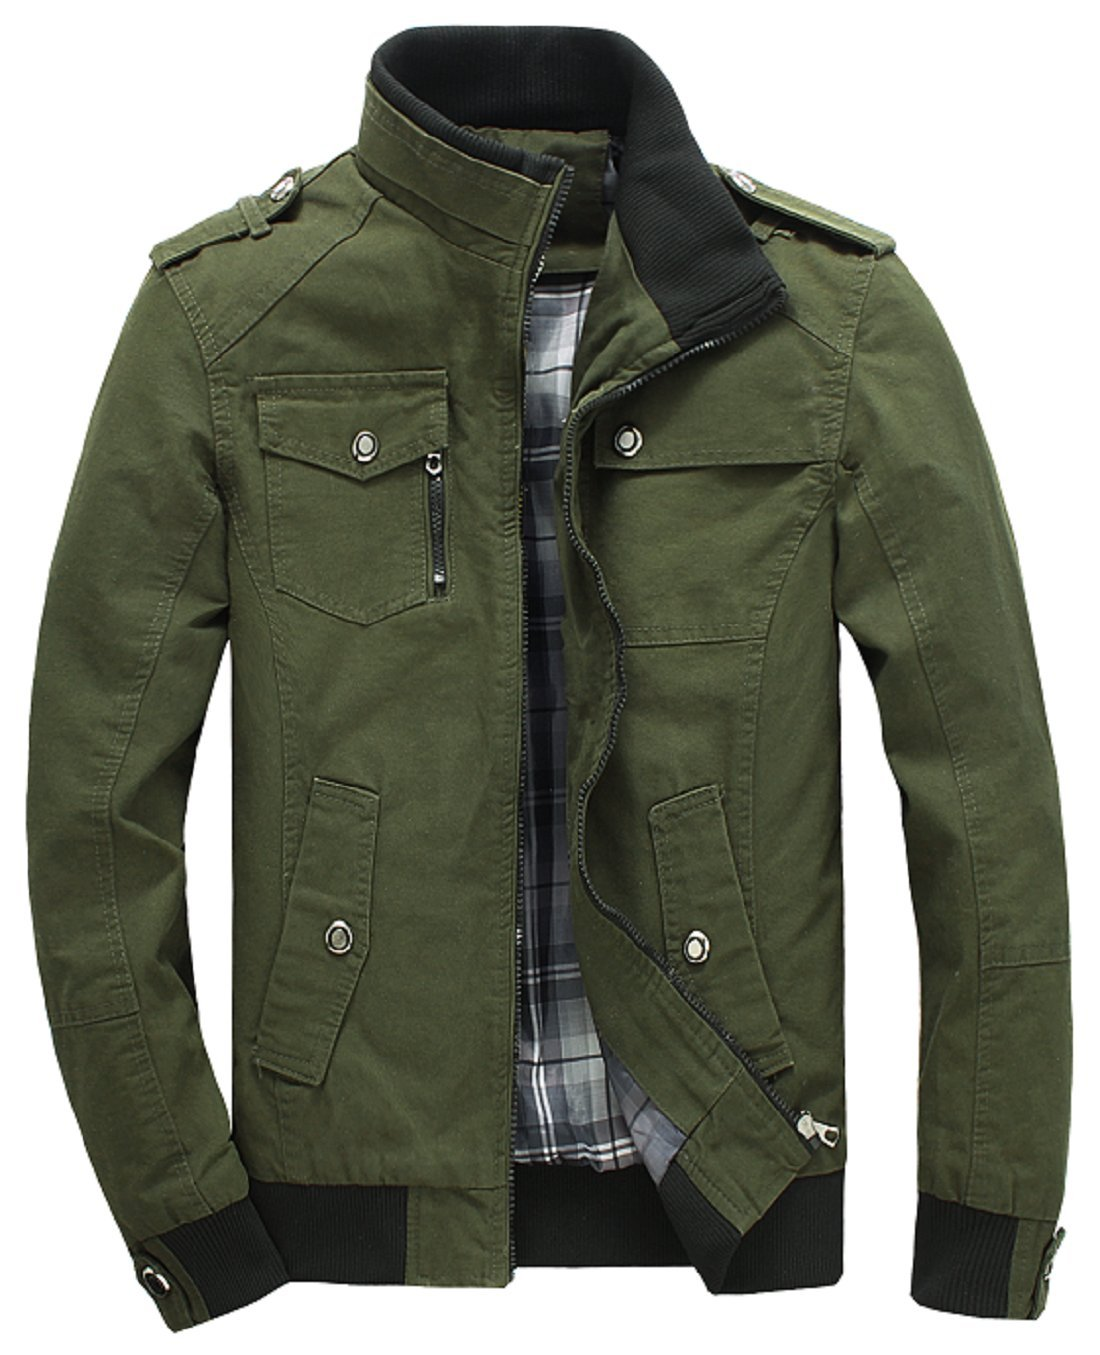 Lejckea Men's Muti-Pockets Cotton Stand Collar Jackets and Coats(XS Size,Army Green) by Lejckea